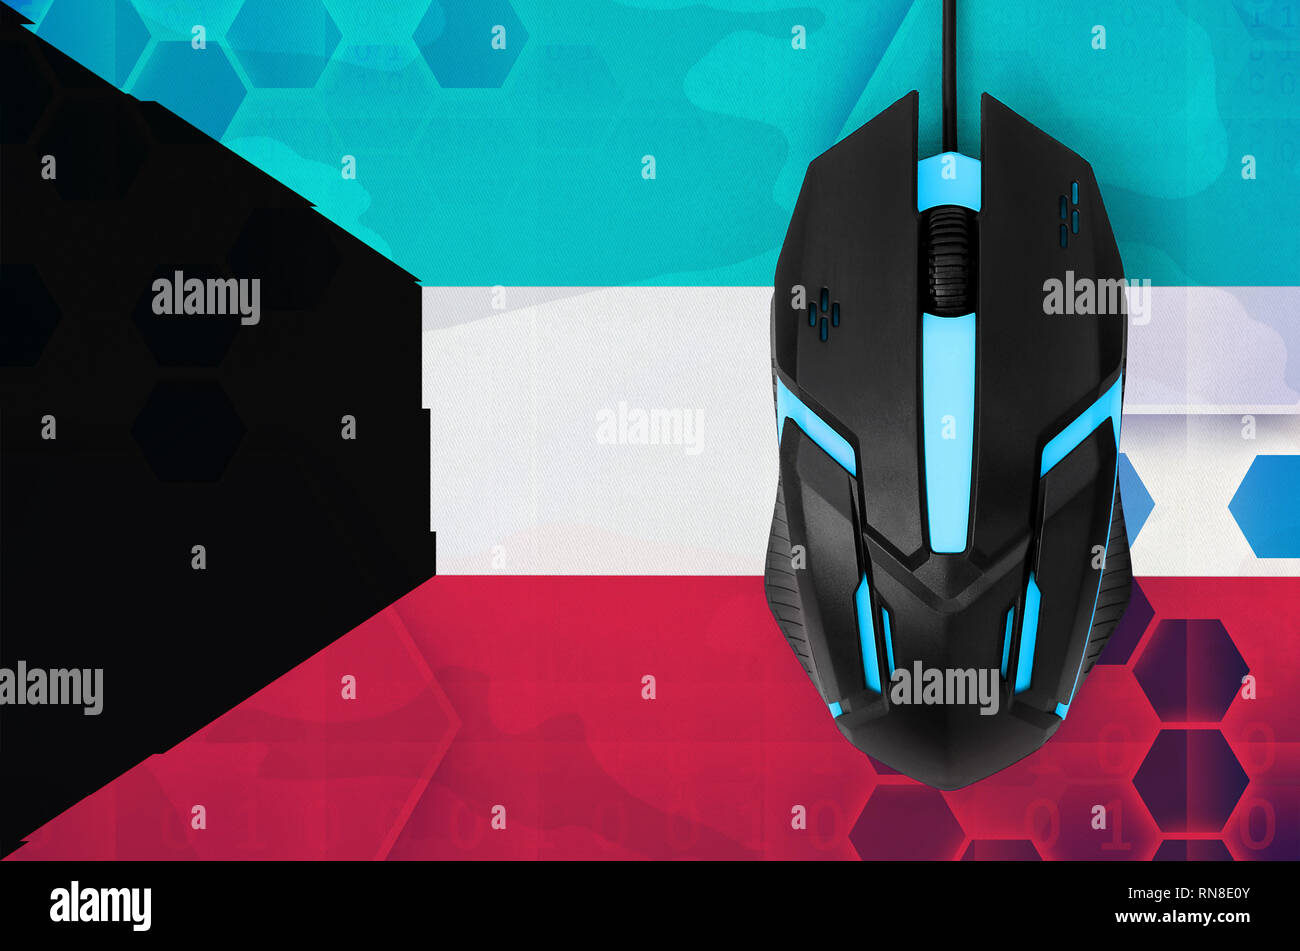 Kuwait flag  and modern backlit computer mouse. Concept of country representing e-sports team - Stock Image